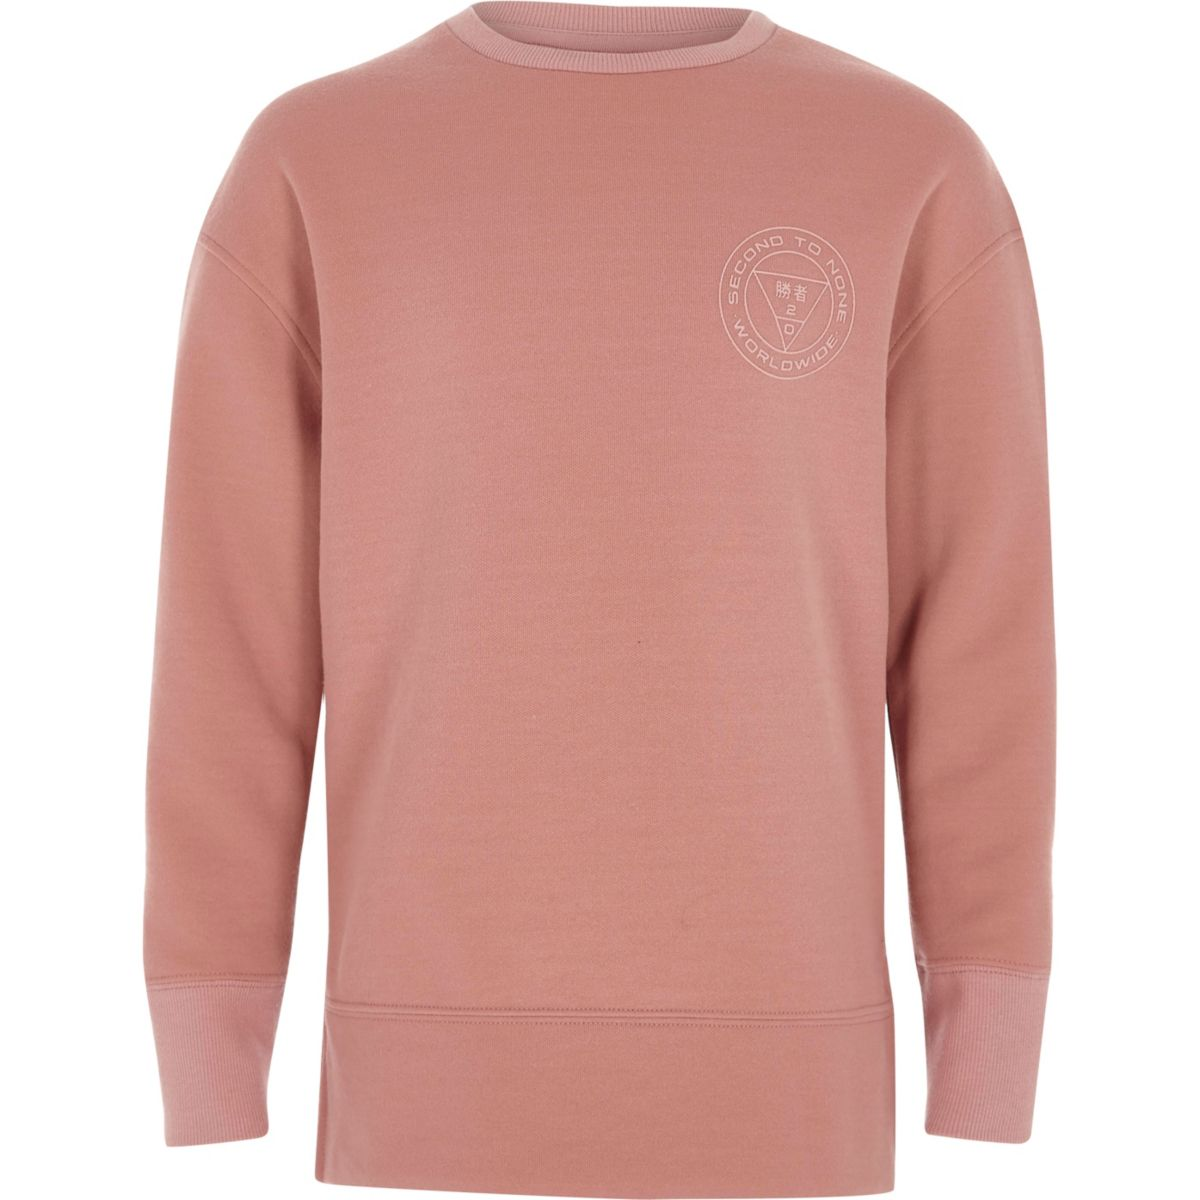 Boys pink 'second to none' sweatshirt